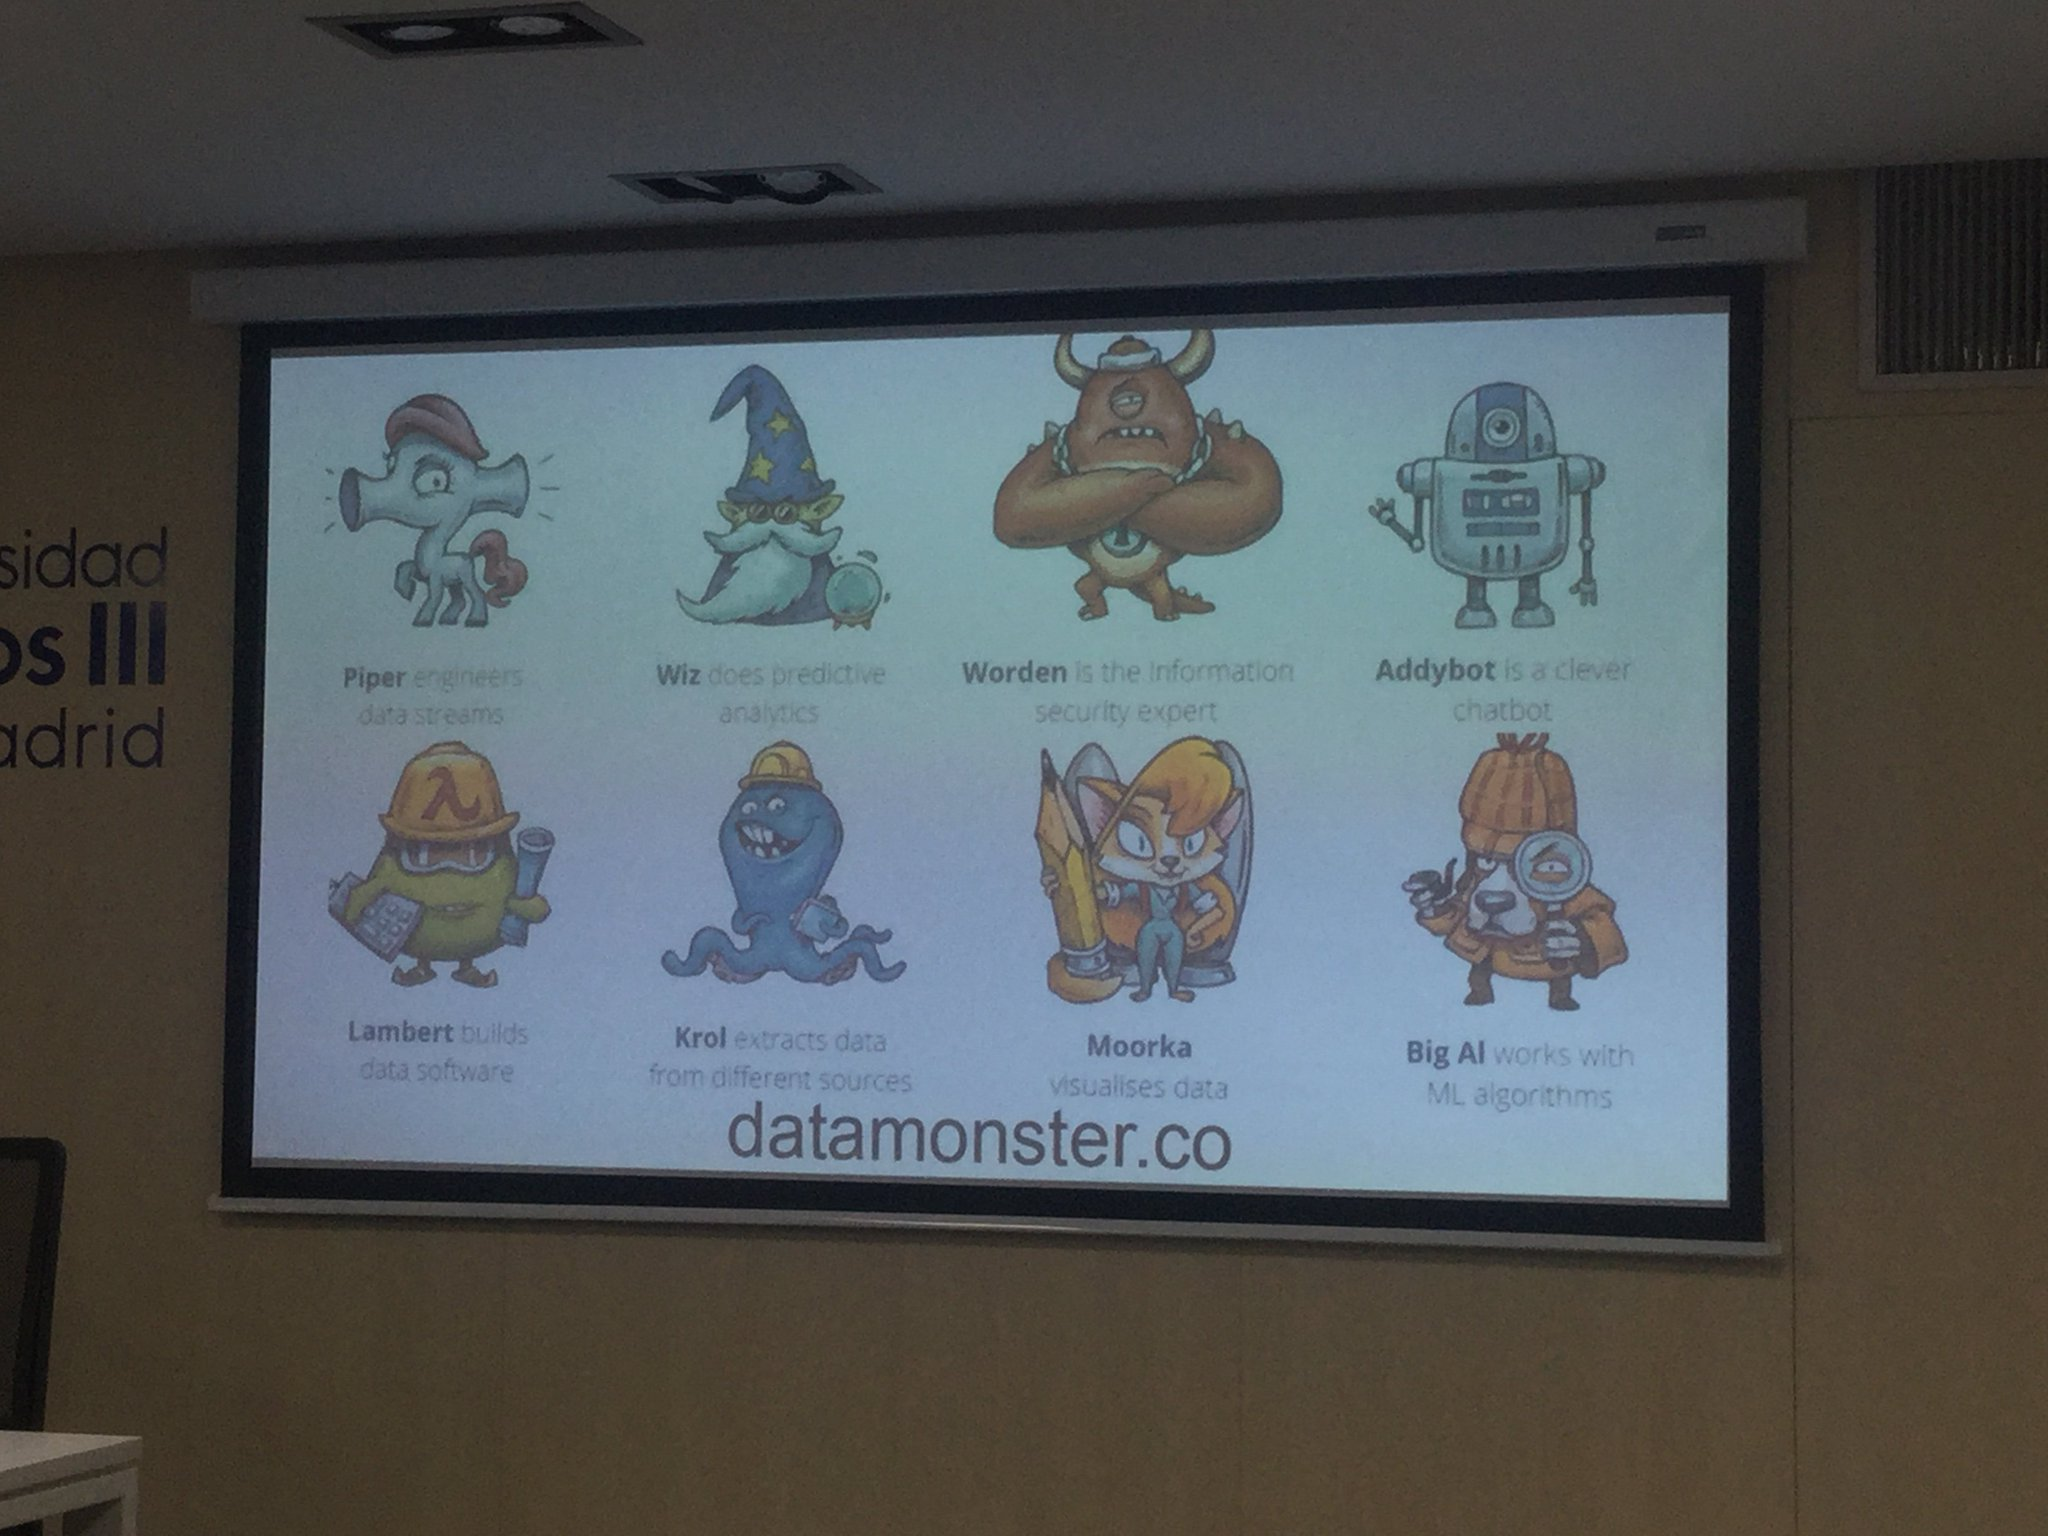 @luismart presenting his data monsters - you need a team to produce data science frameworks #EDISONMadrid https://t.co/h78OJ8oU8r